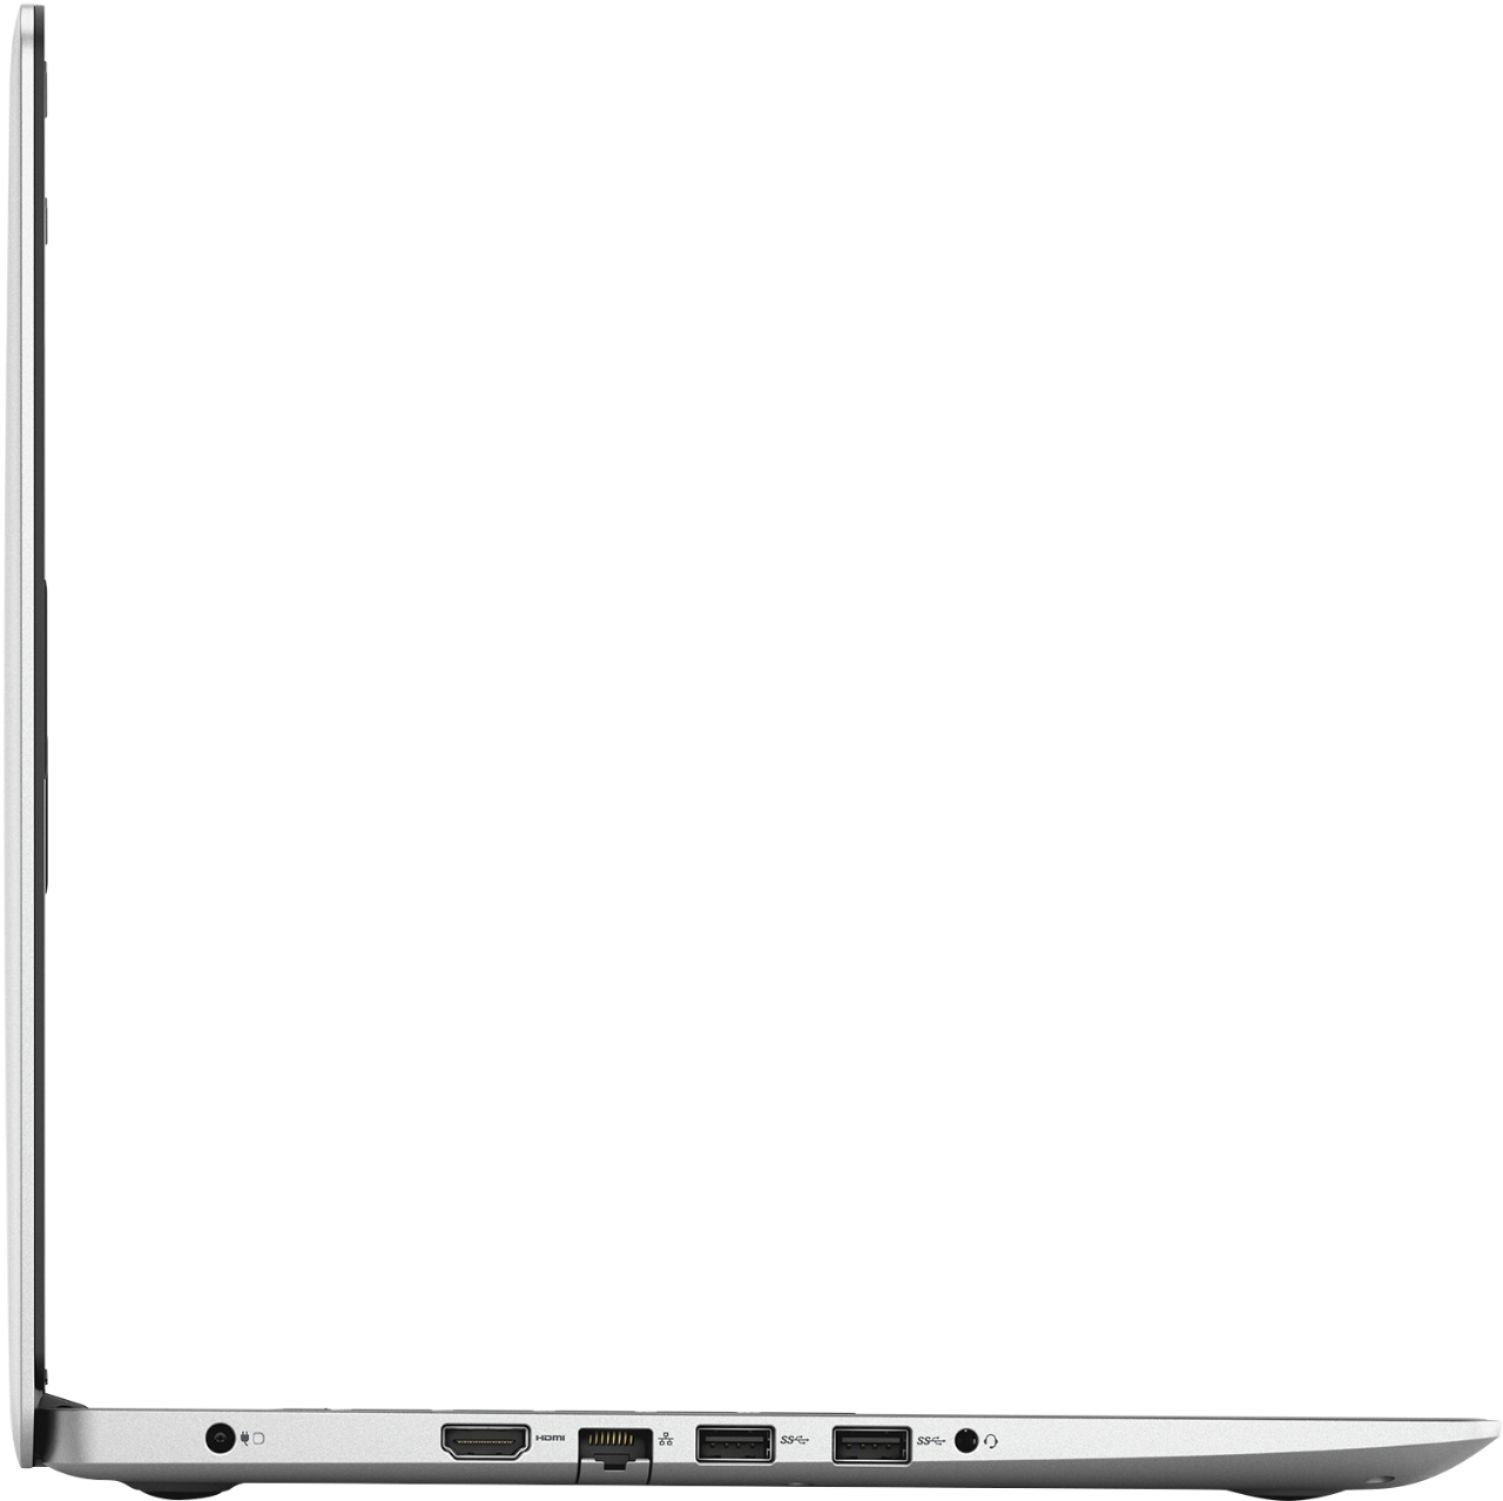 """Alt View Zoom 10. Dell - Geek Squad Certified Refurbished Inspiron 15.6"""" Touch-Screen Laptop - Intel Core i7 - 12GB Memory - 256GB SSD - Silver."""